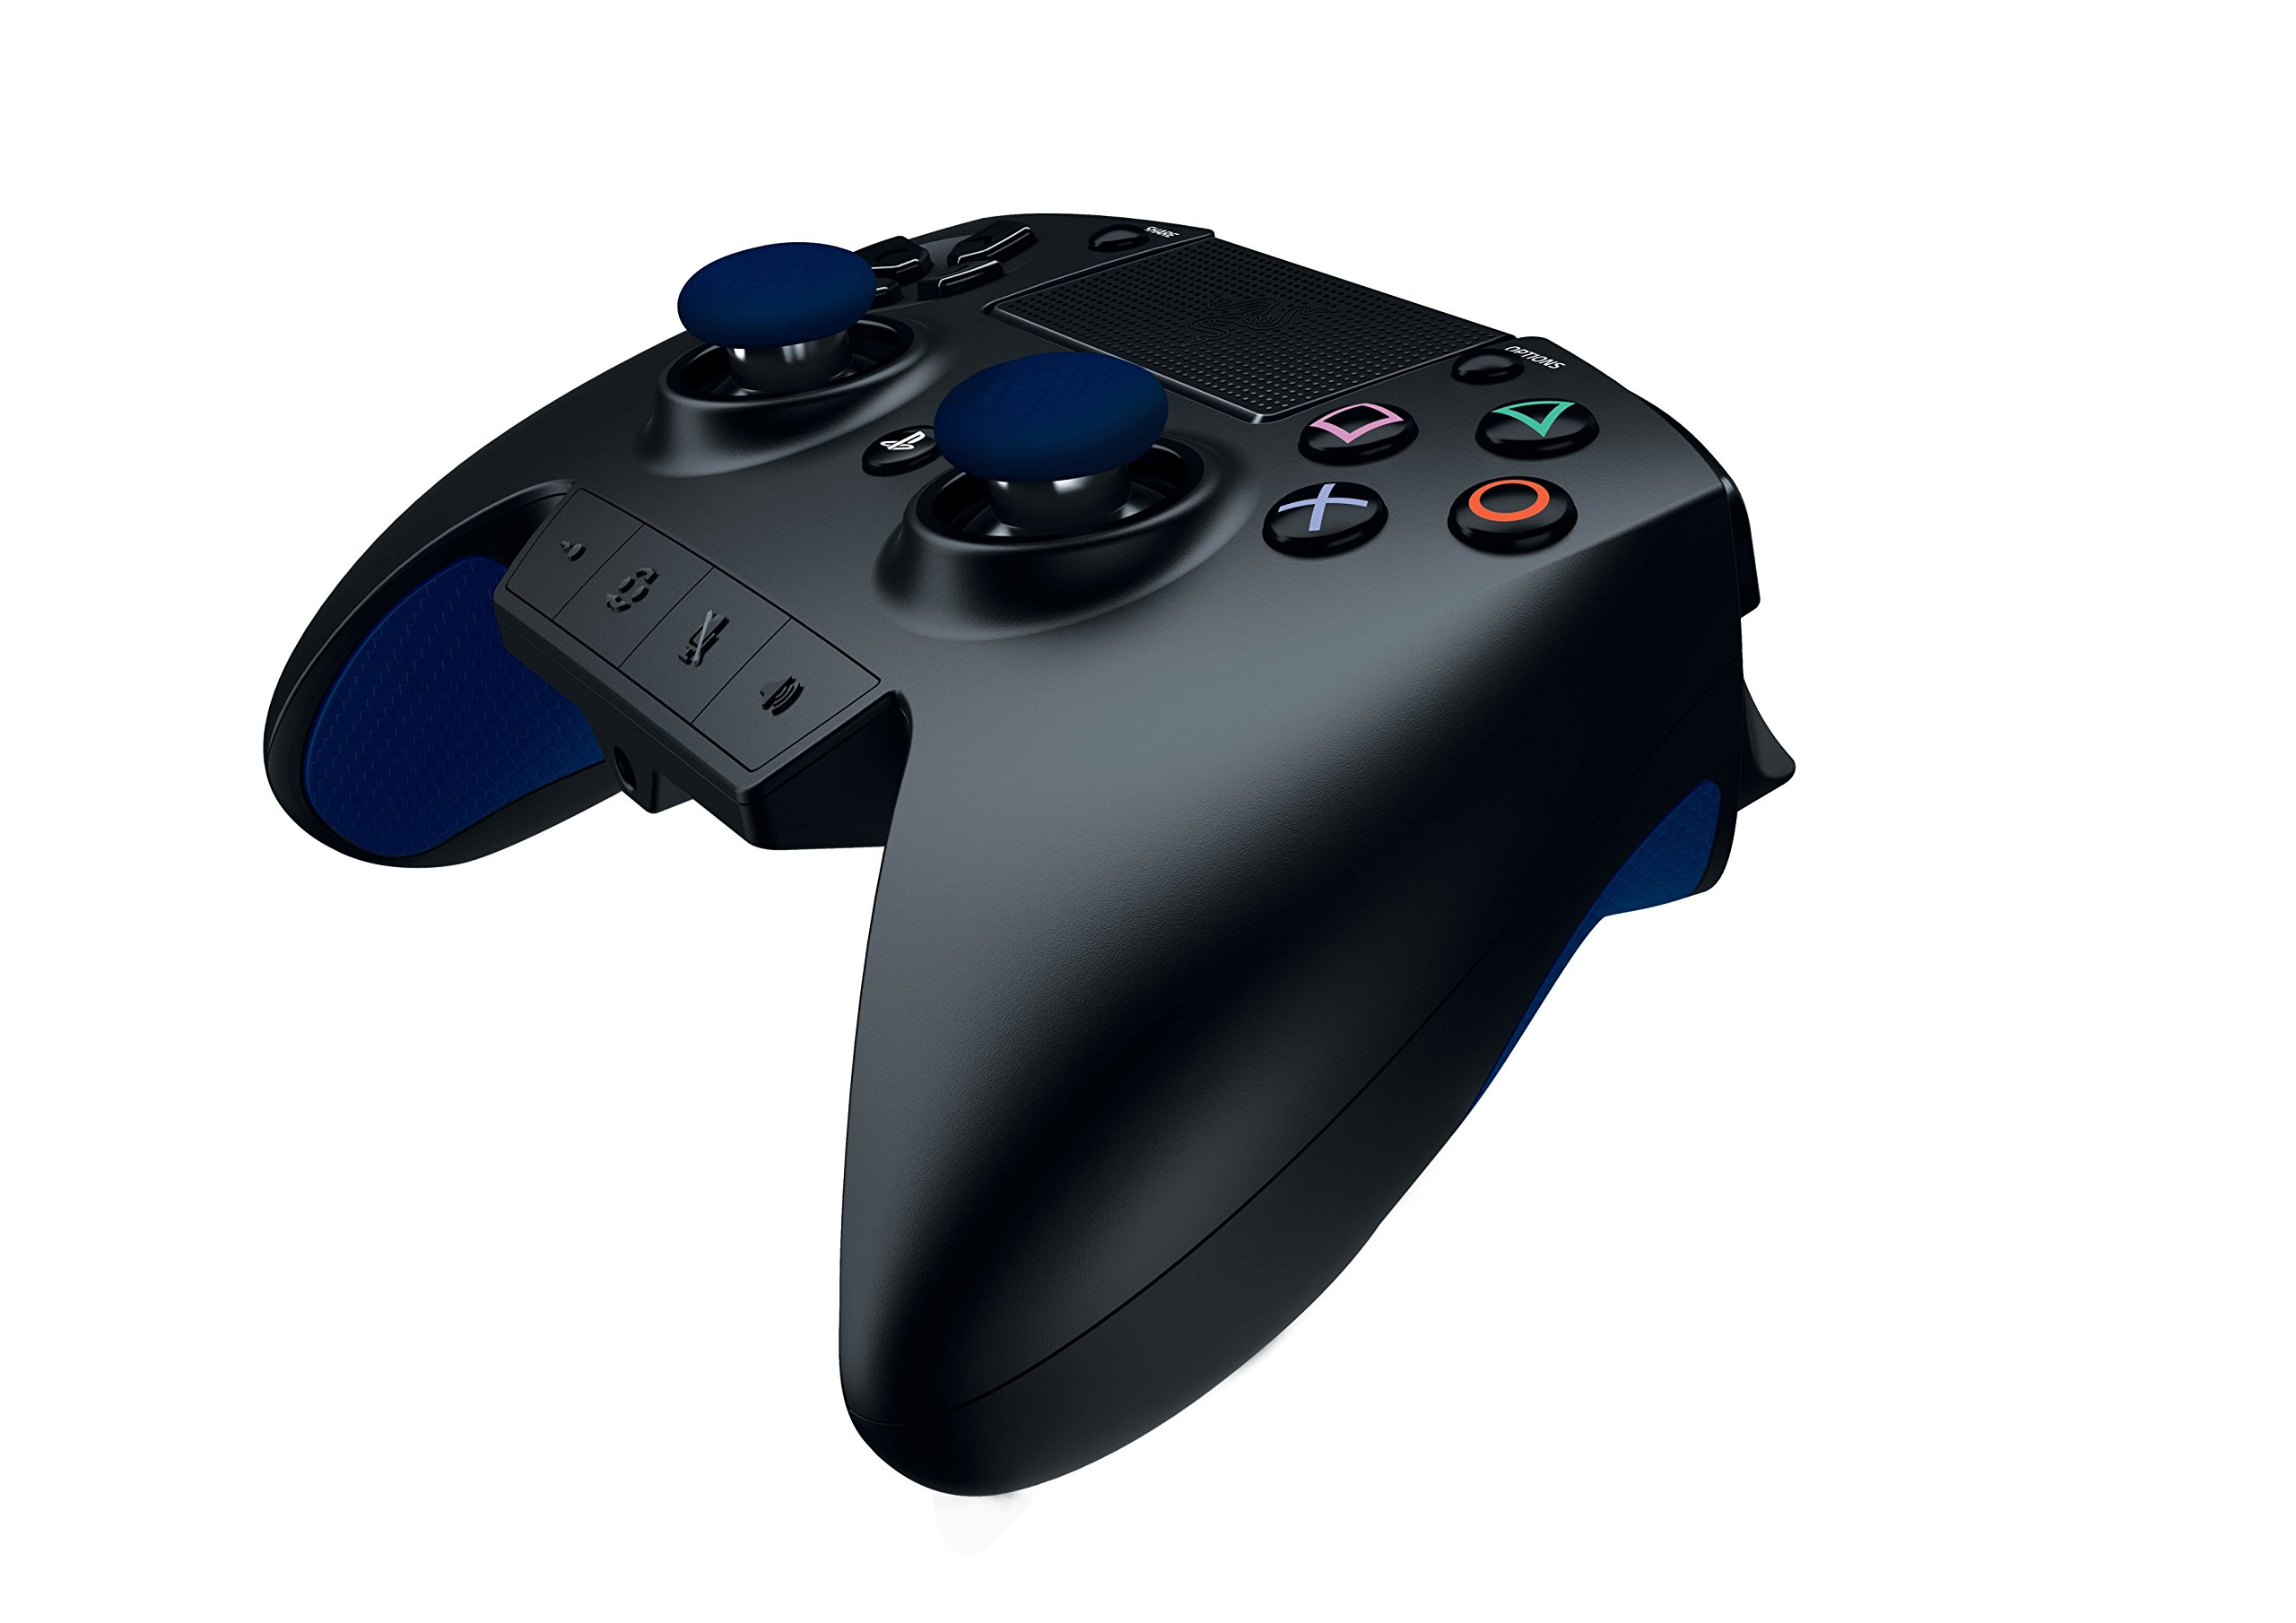 Razer Raiju - Next-Gen Premium Gaming Controller for PlayStation 4 - Fully-Programmable Hyper-Responsive Buttons, Blue by Razer (Image #5)